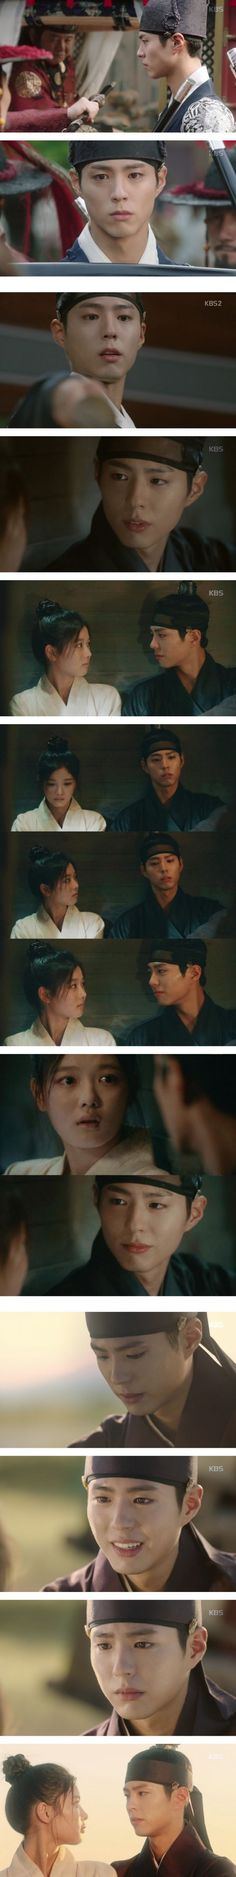 [Spoiler] Added episode 6 captures for the #kdrama 'Moonlight Drawn by Clouds'